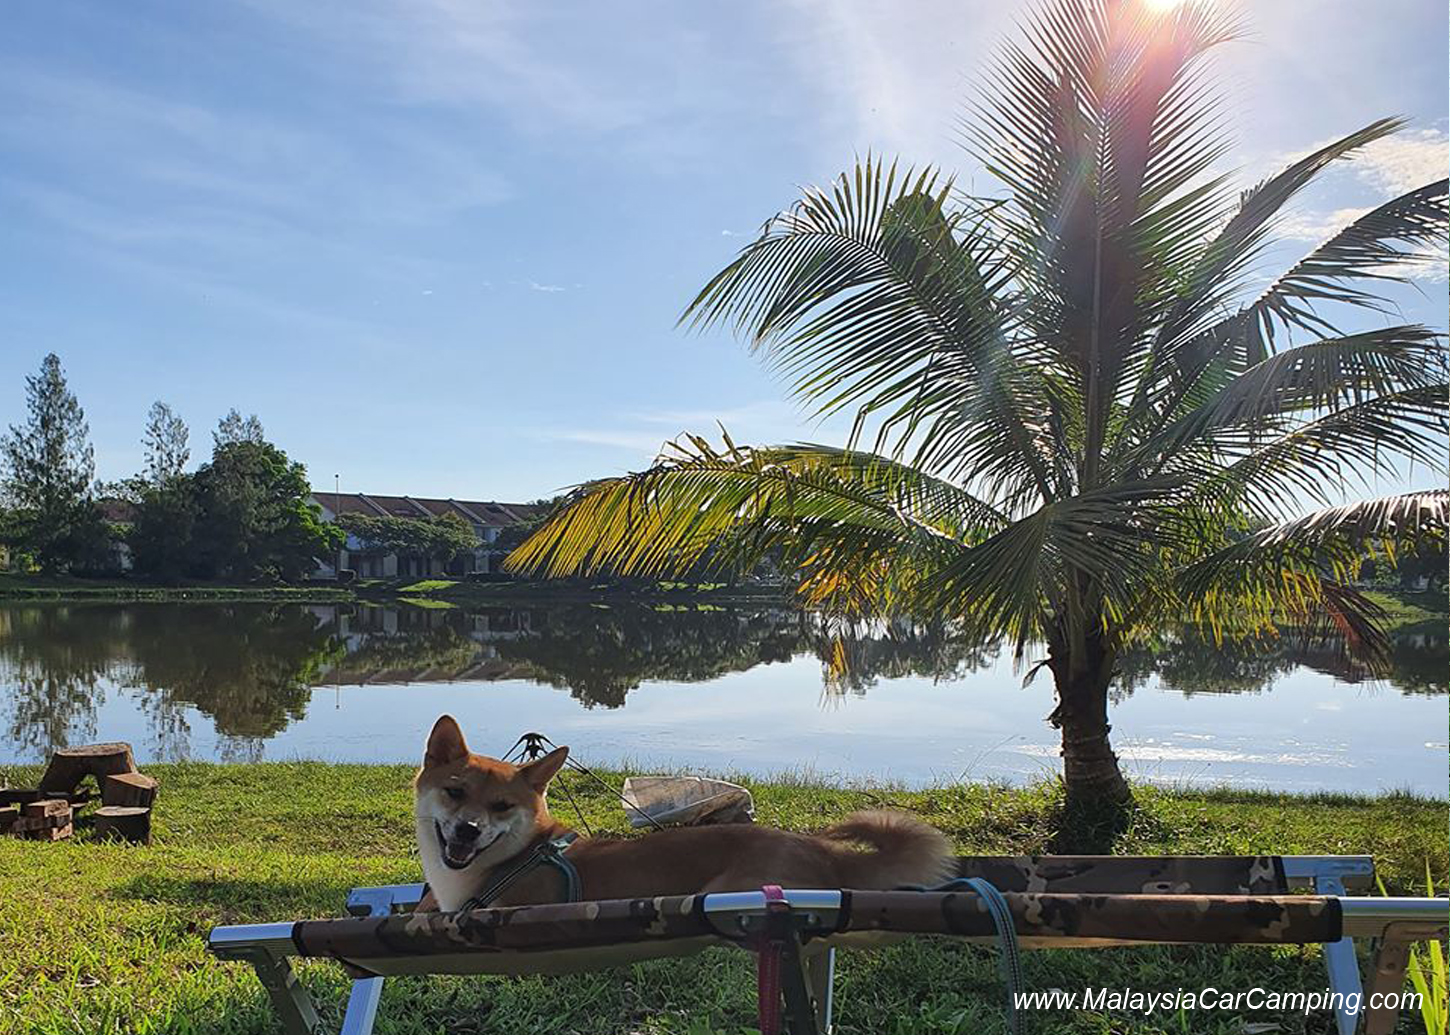 camping_with_dogs_puppy_lakeside_camping_malaysia_car_camping_malaysia_campsite-16